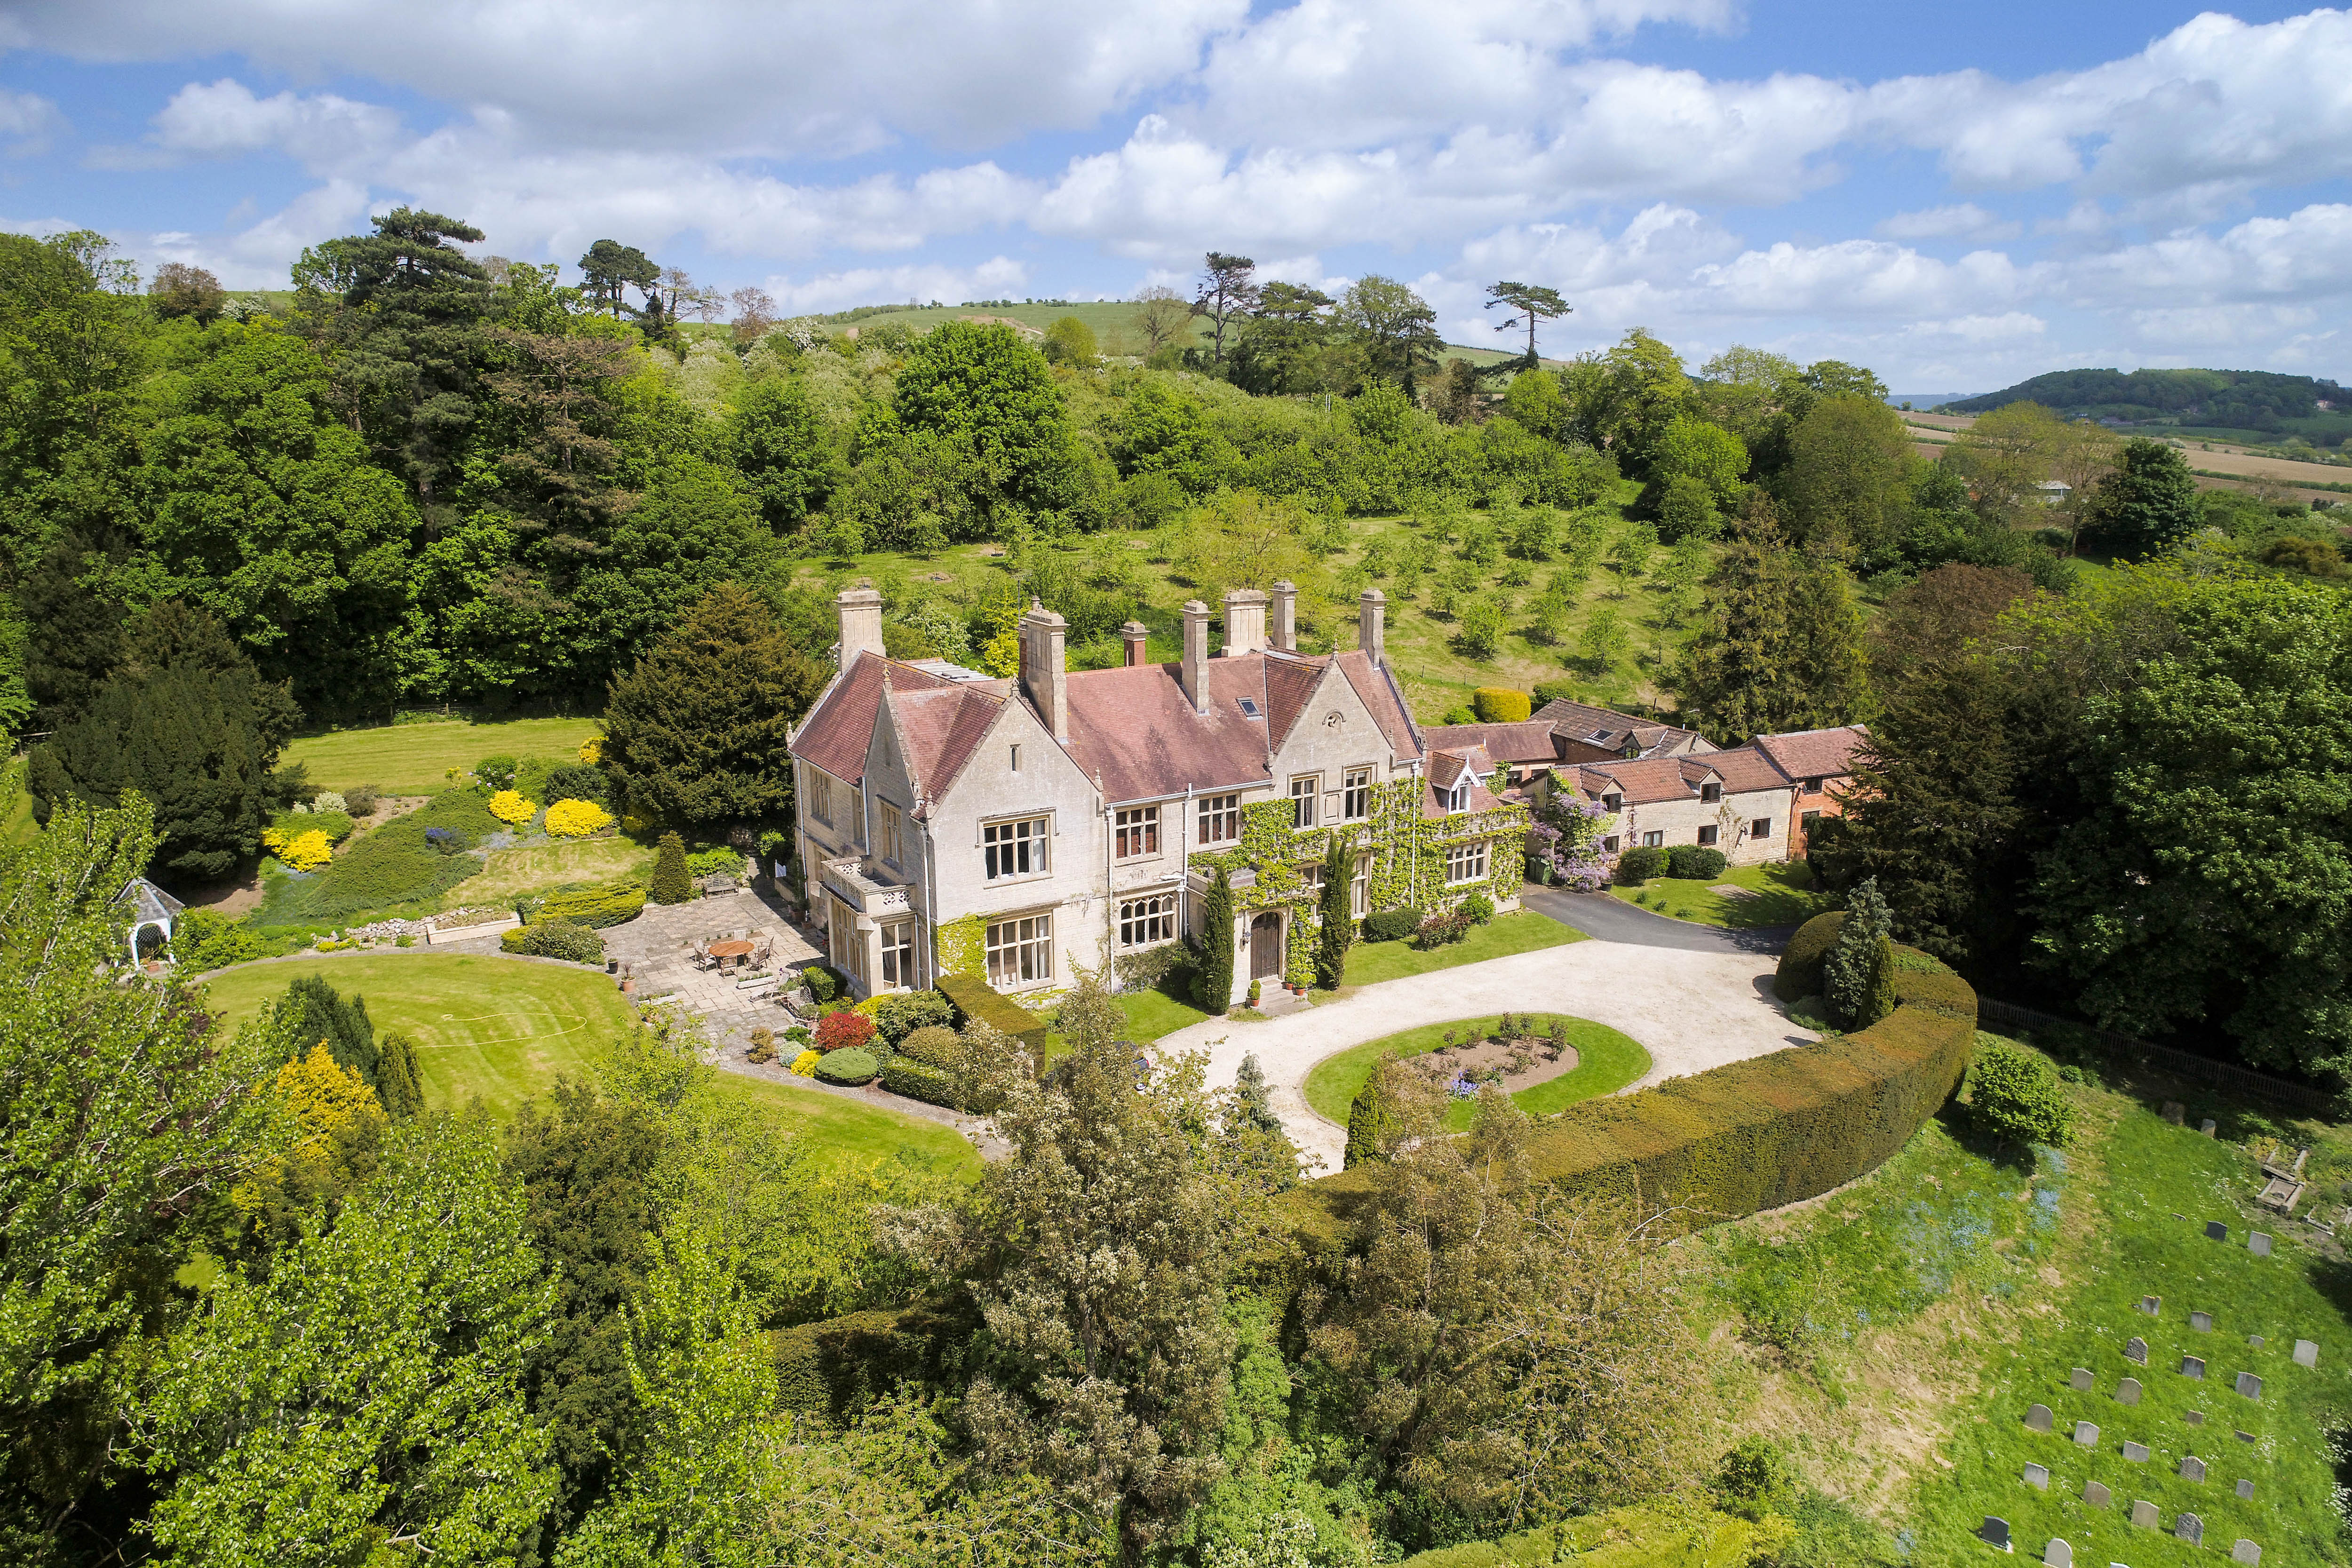 A magnificent Victorian house overlooking Cheltenham racecourse in Gloucestershire - Country Life